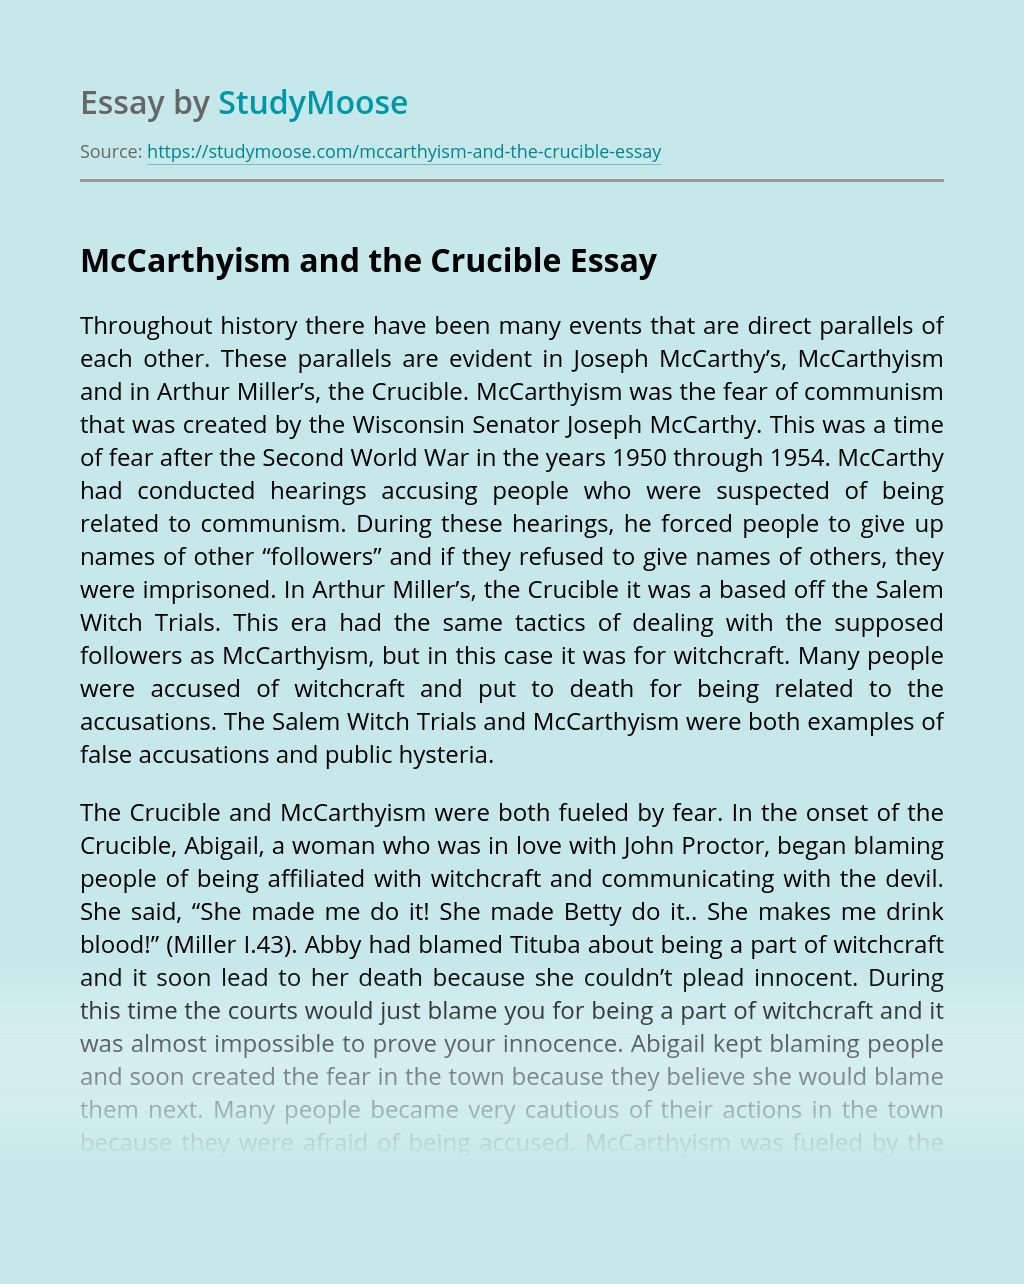 McCarthyism and the Crucible